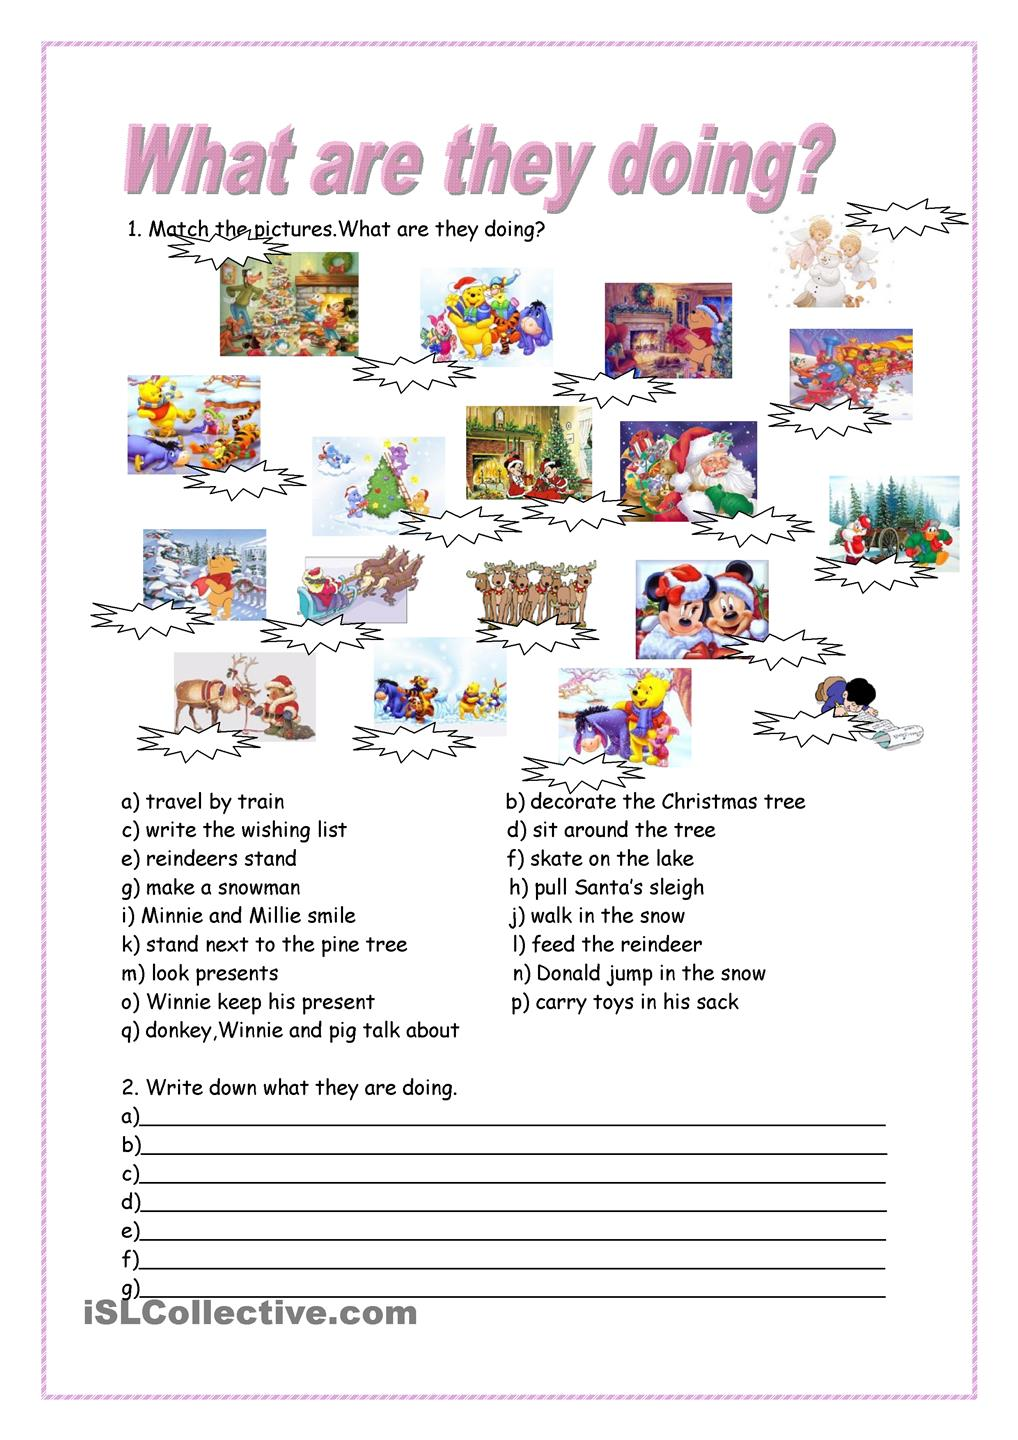 Maxresdefault together with The Animals On The Farm Worksheet Color And Match as well Maxresdefault likewise Dolchsightwordssecondgrade additionally Identify And Circle Verbs In Each Sentence. on verbs in kindergarten